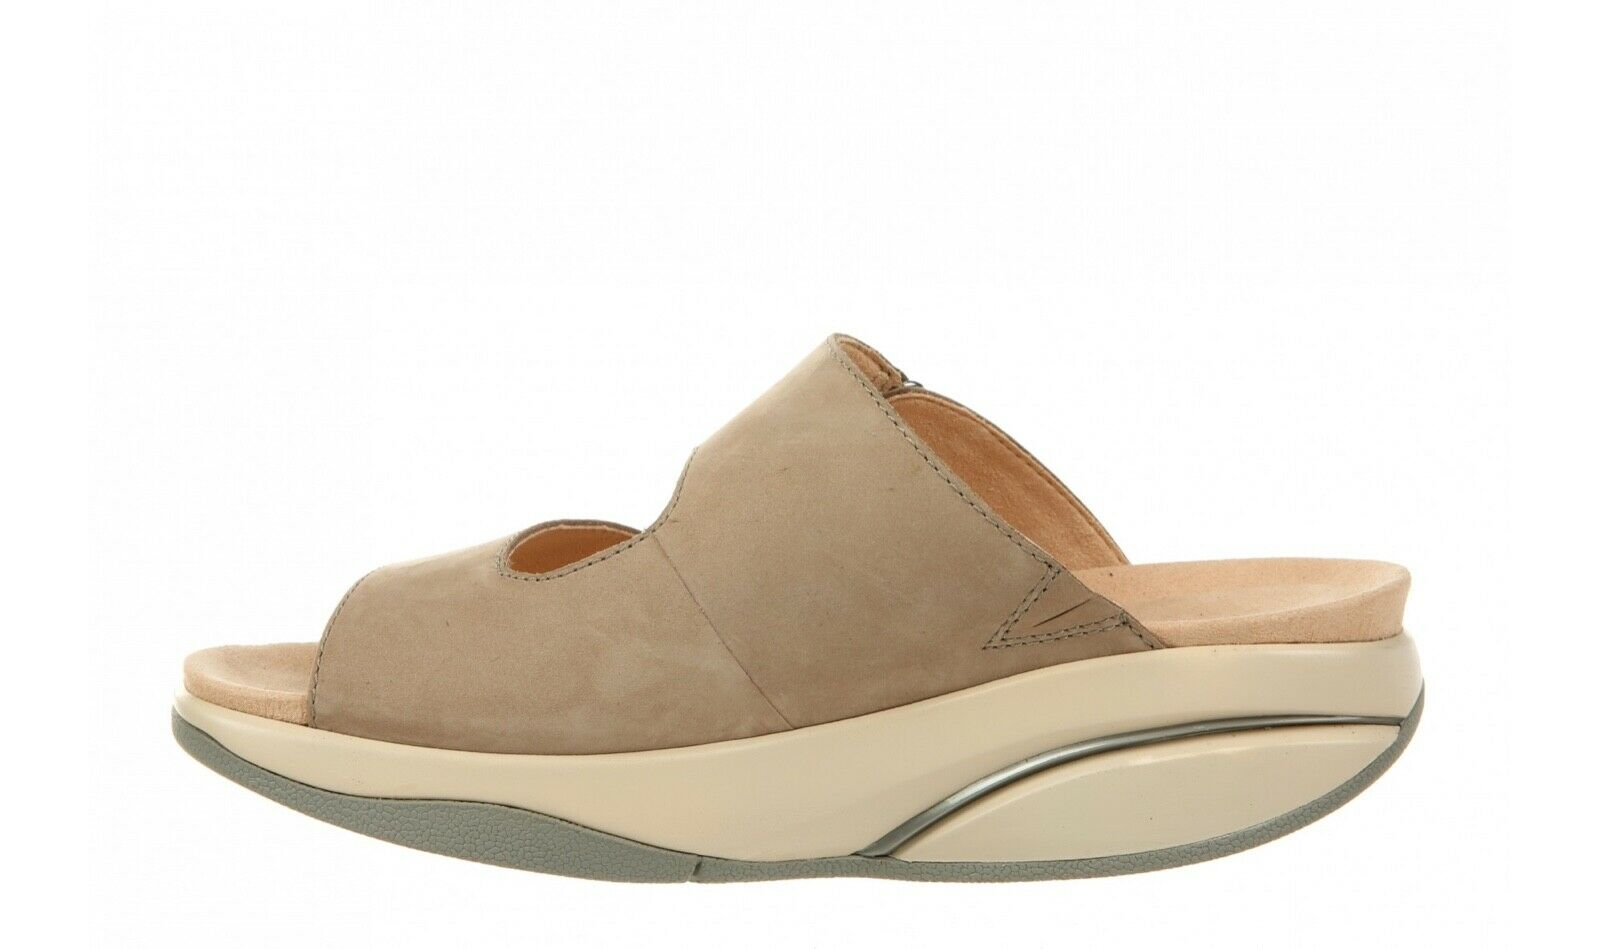 MBT Tabia Donna  Slide Sandals (nero or Taupe Taupe Taupe grigio, Light Weight 2 colores) 7078f4